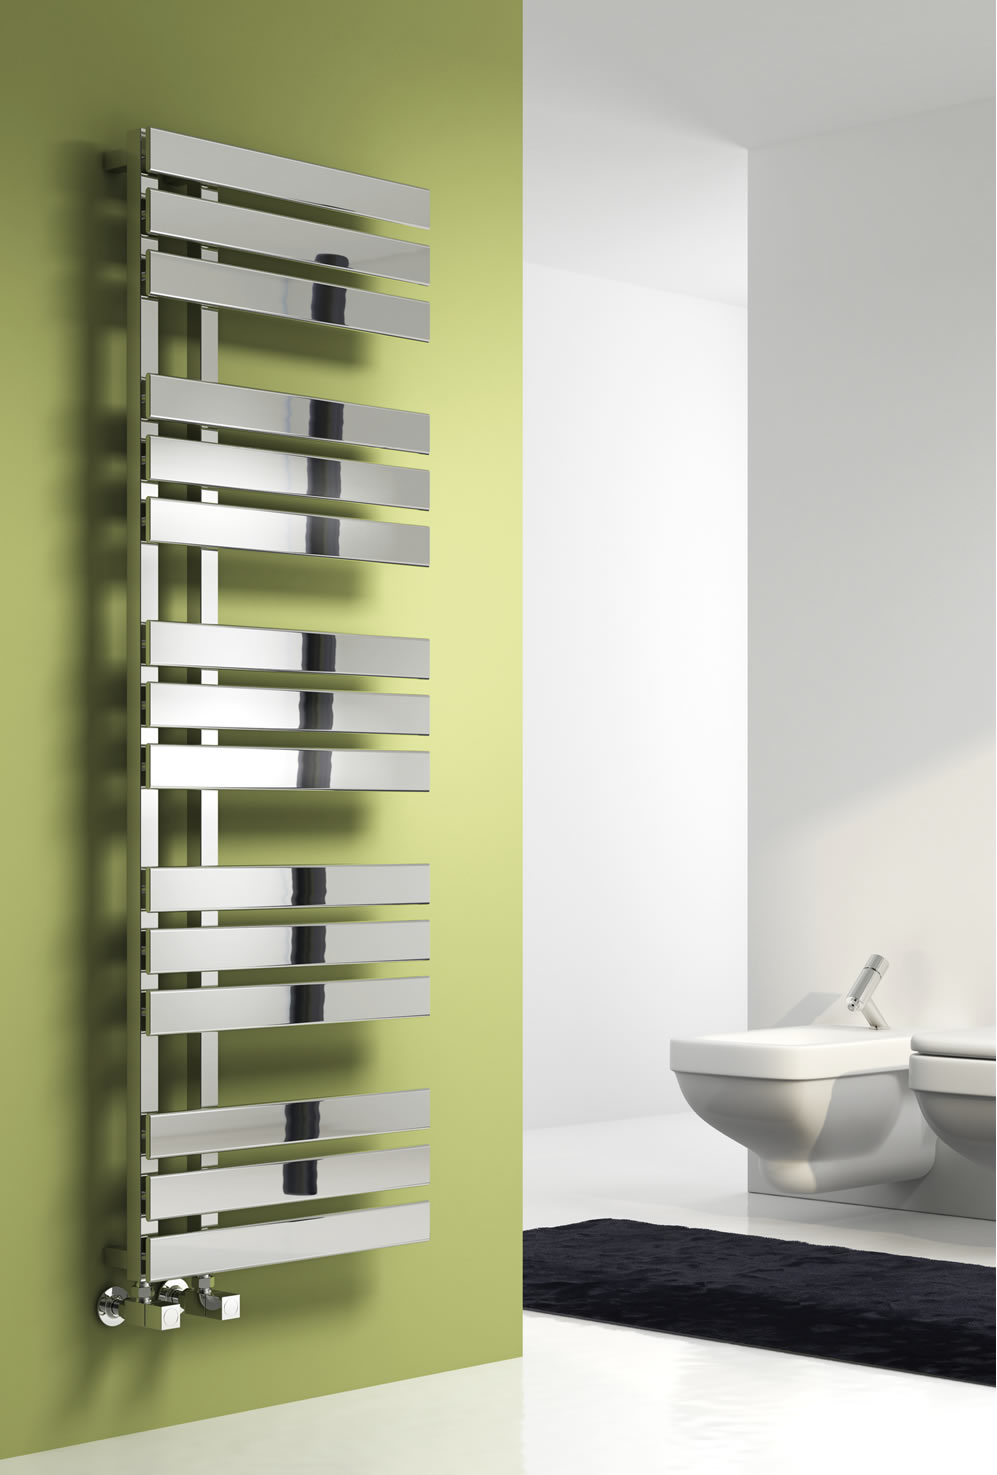 Reina Sesia Steel Contemporary Vertical Bathroom Panelled Towel Rail and Radiator - Chrome